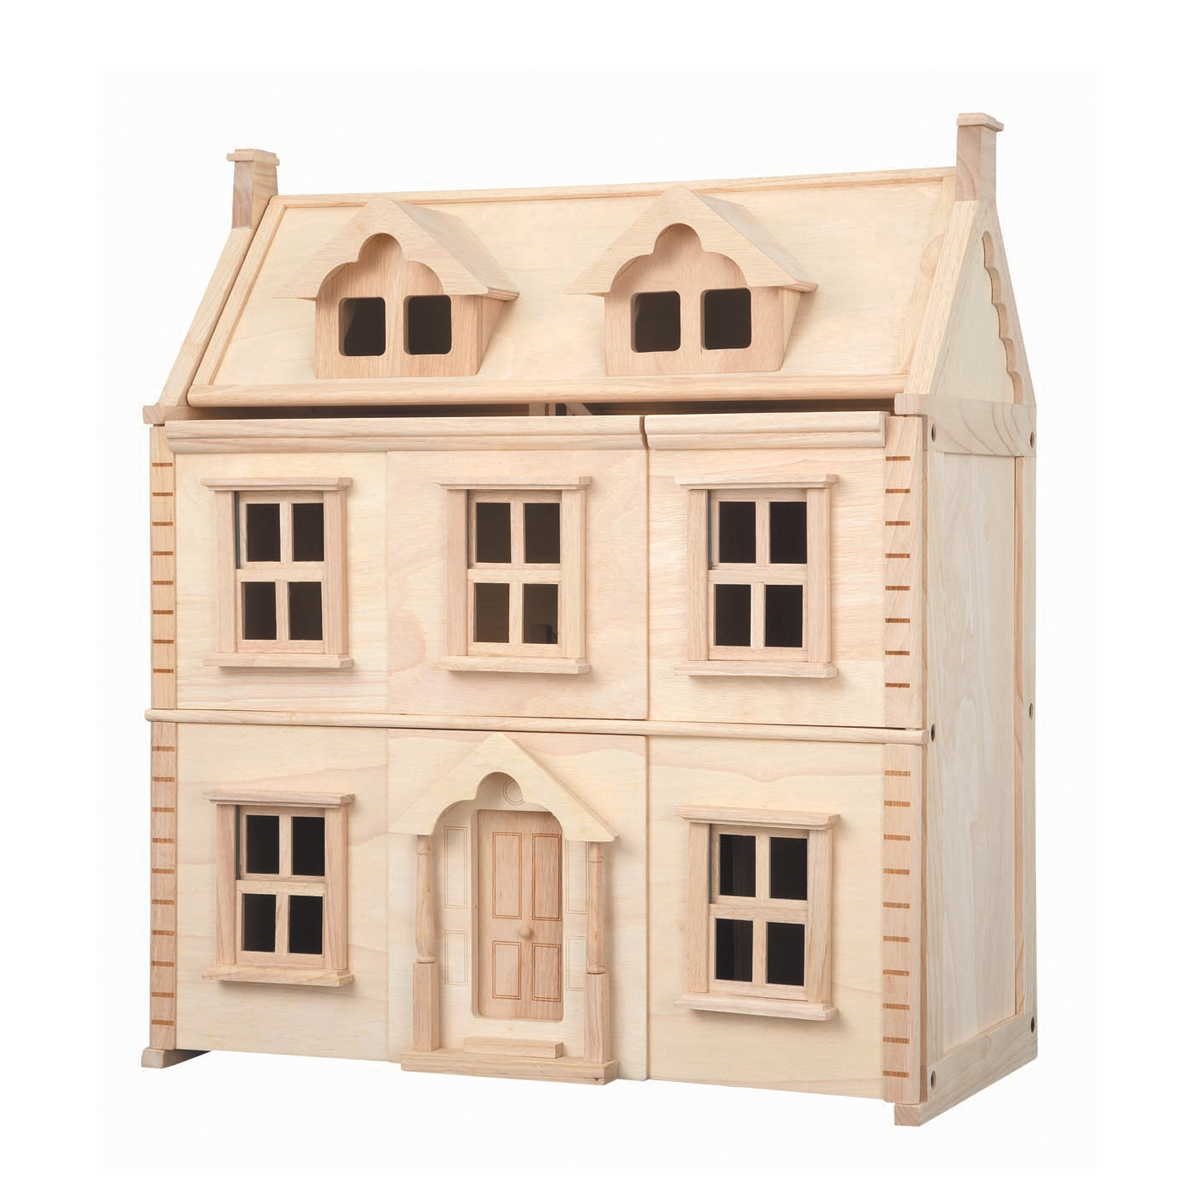 Plan Toys Victorian Doll House